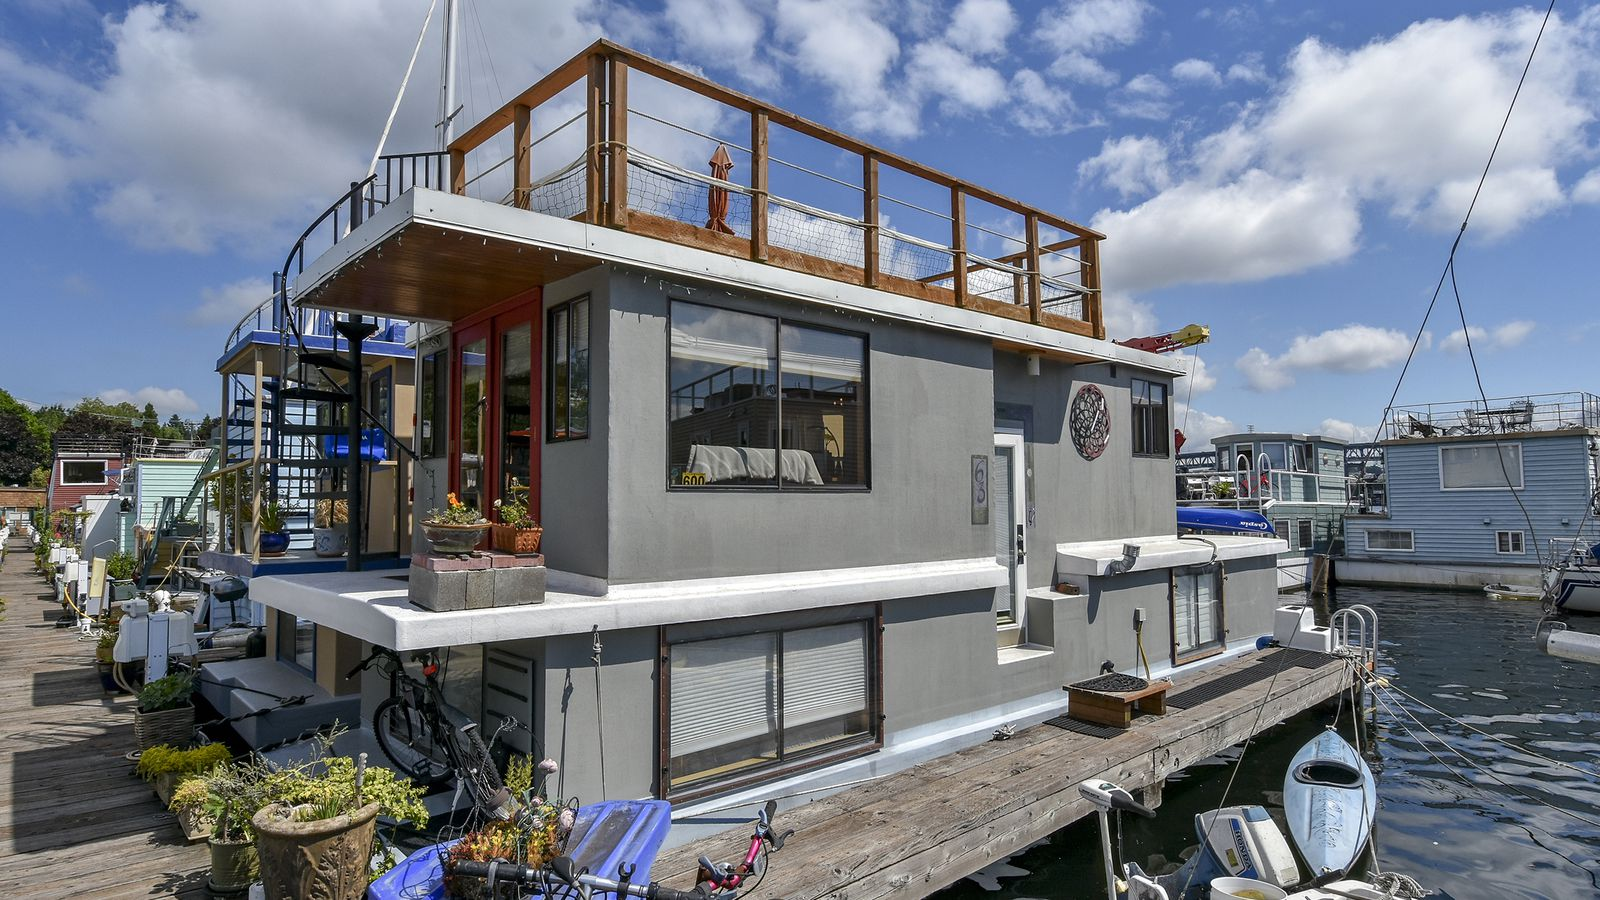 Washington WA Seattle Lake Union Lake Union Real Estate Listings amp Homes for Sale  There are currently 42 homes for sale in Lake Union at a median listing price of 745K Some of these homes are Hot Homes meaning theyre likely to sell quickly